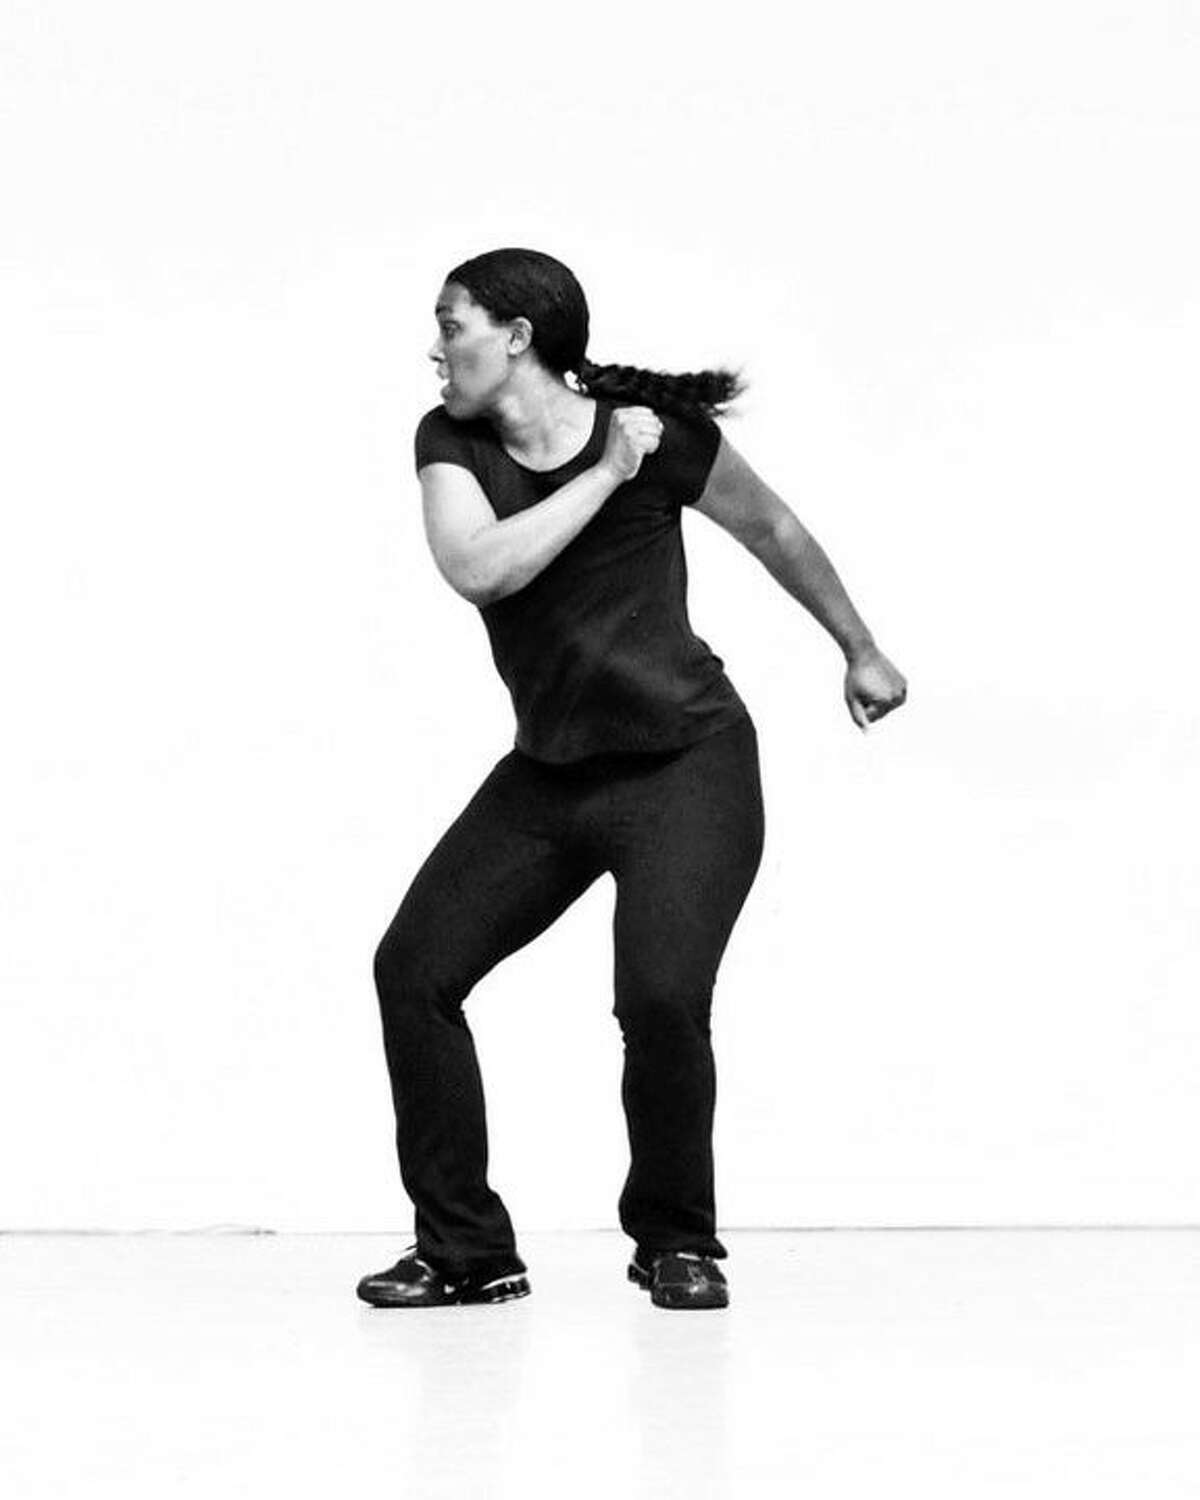 Maxine Lyle has been a Step dancer and teacher for over 20 years